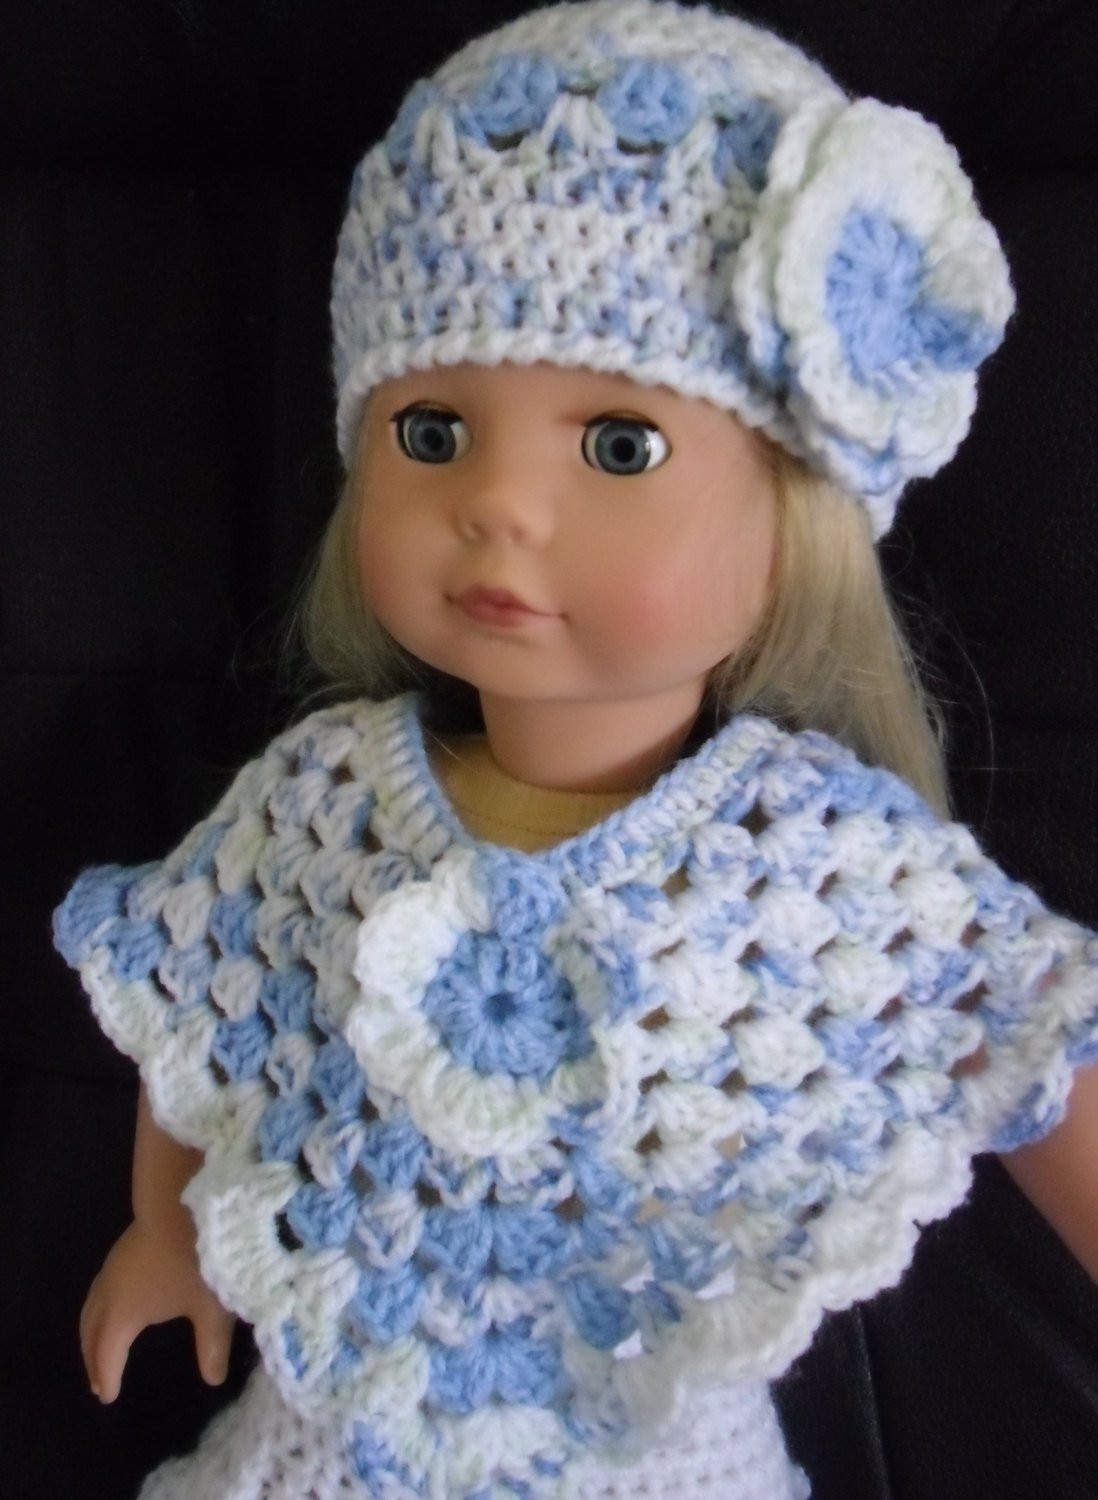 Doll Patterns New Pdf Crochet Pattern for Hat and Poncho for 18 Inch Doll Of Doll Patterns Best Of Gingermelon Dolls My Felt Doll Knitted Outfit Patterns